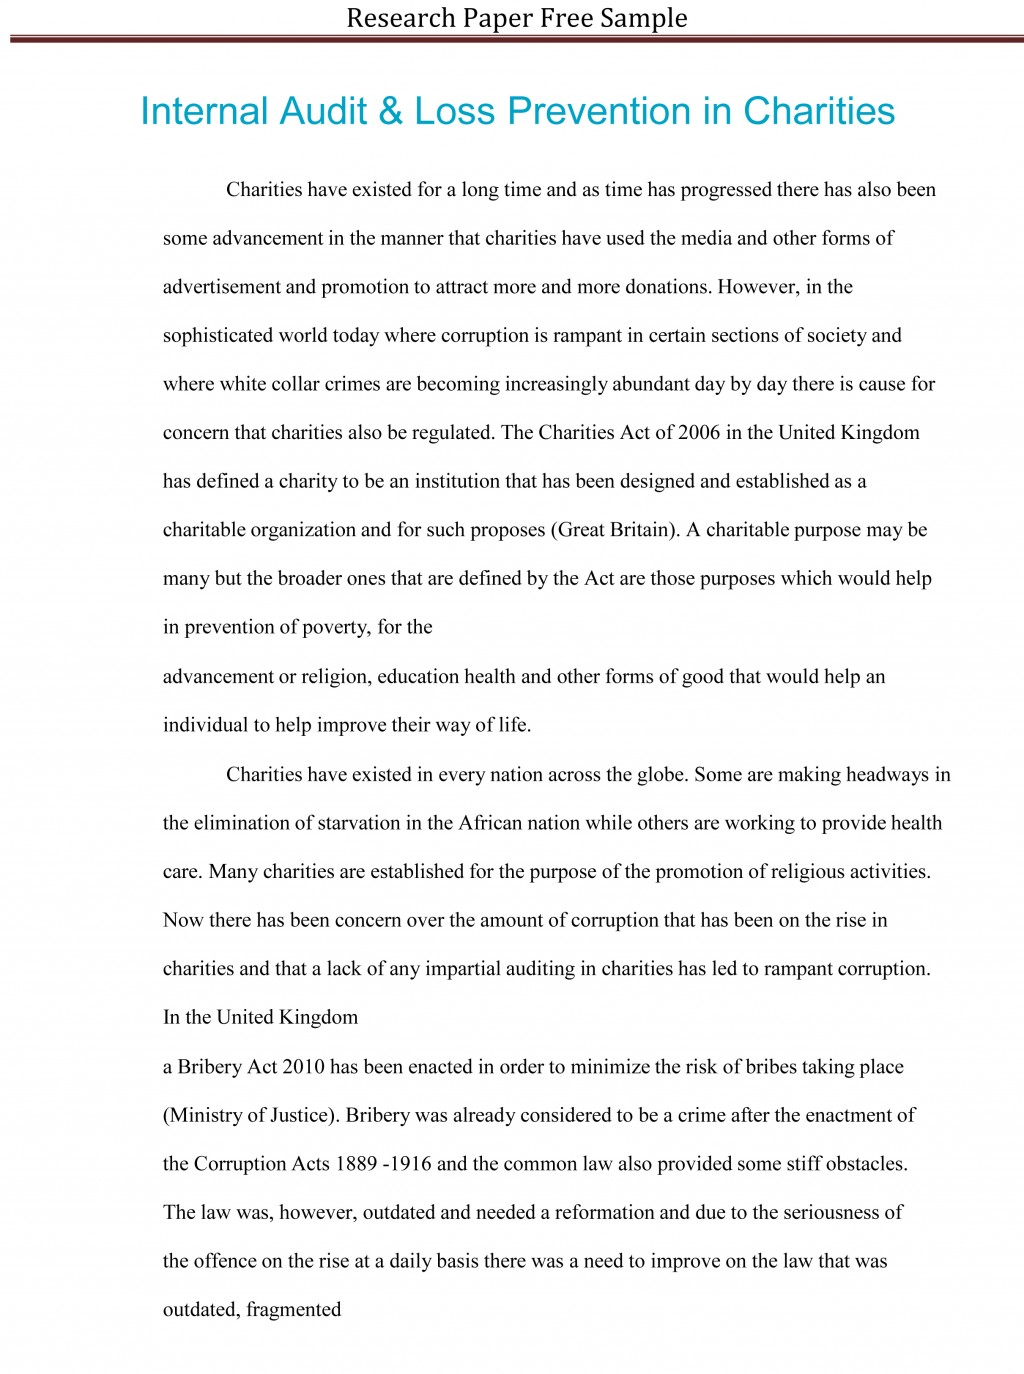 002 Research Paper Free Examples Of College Papers Unusual Large